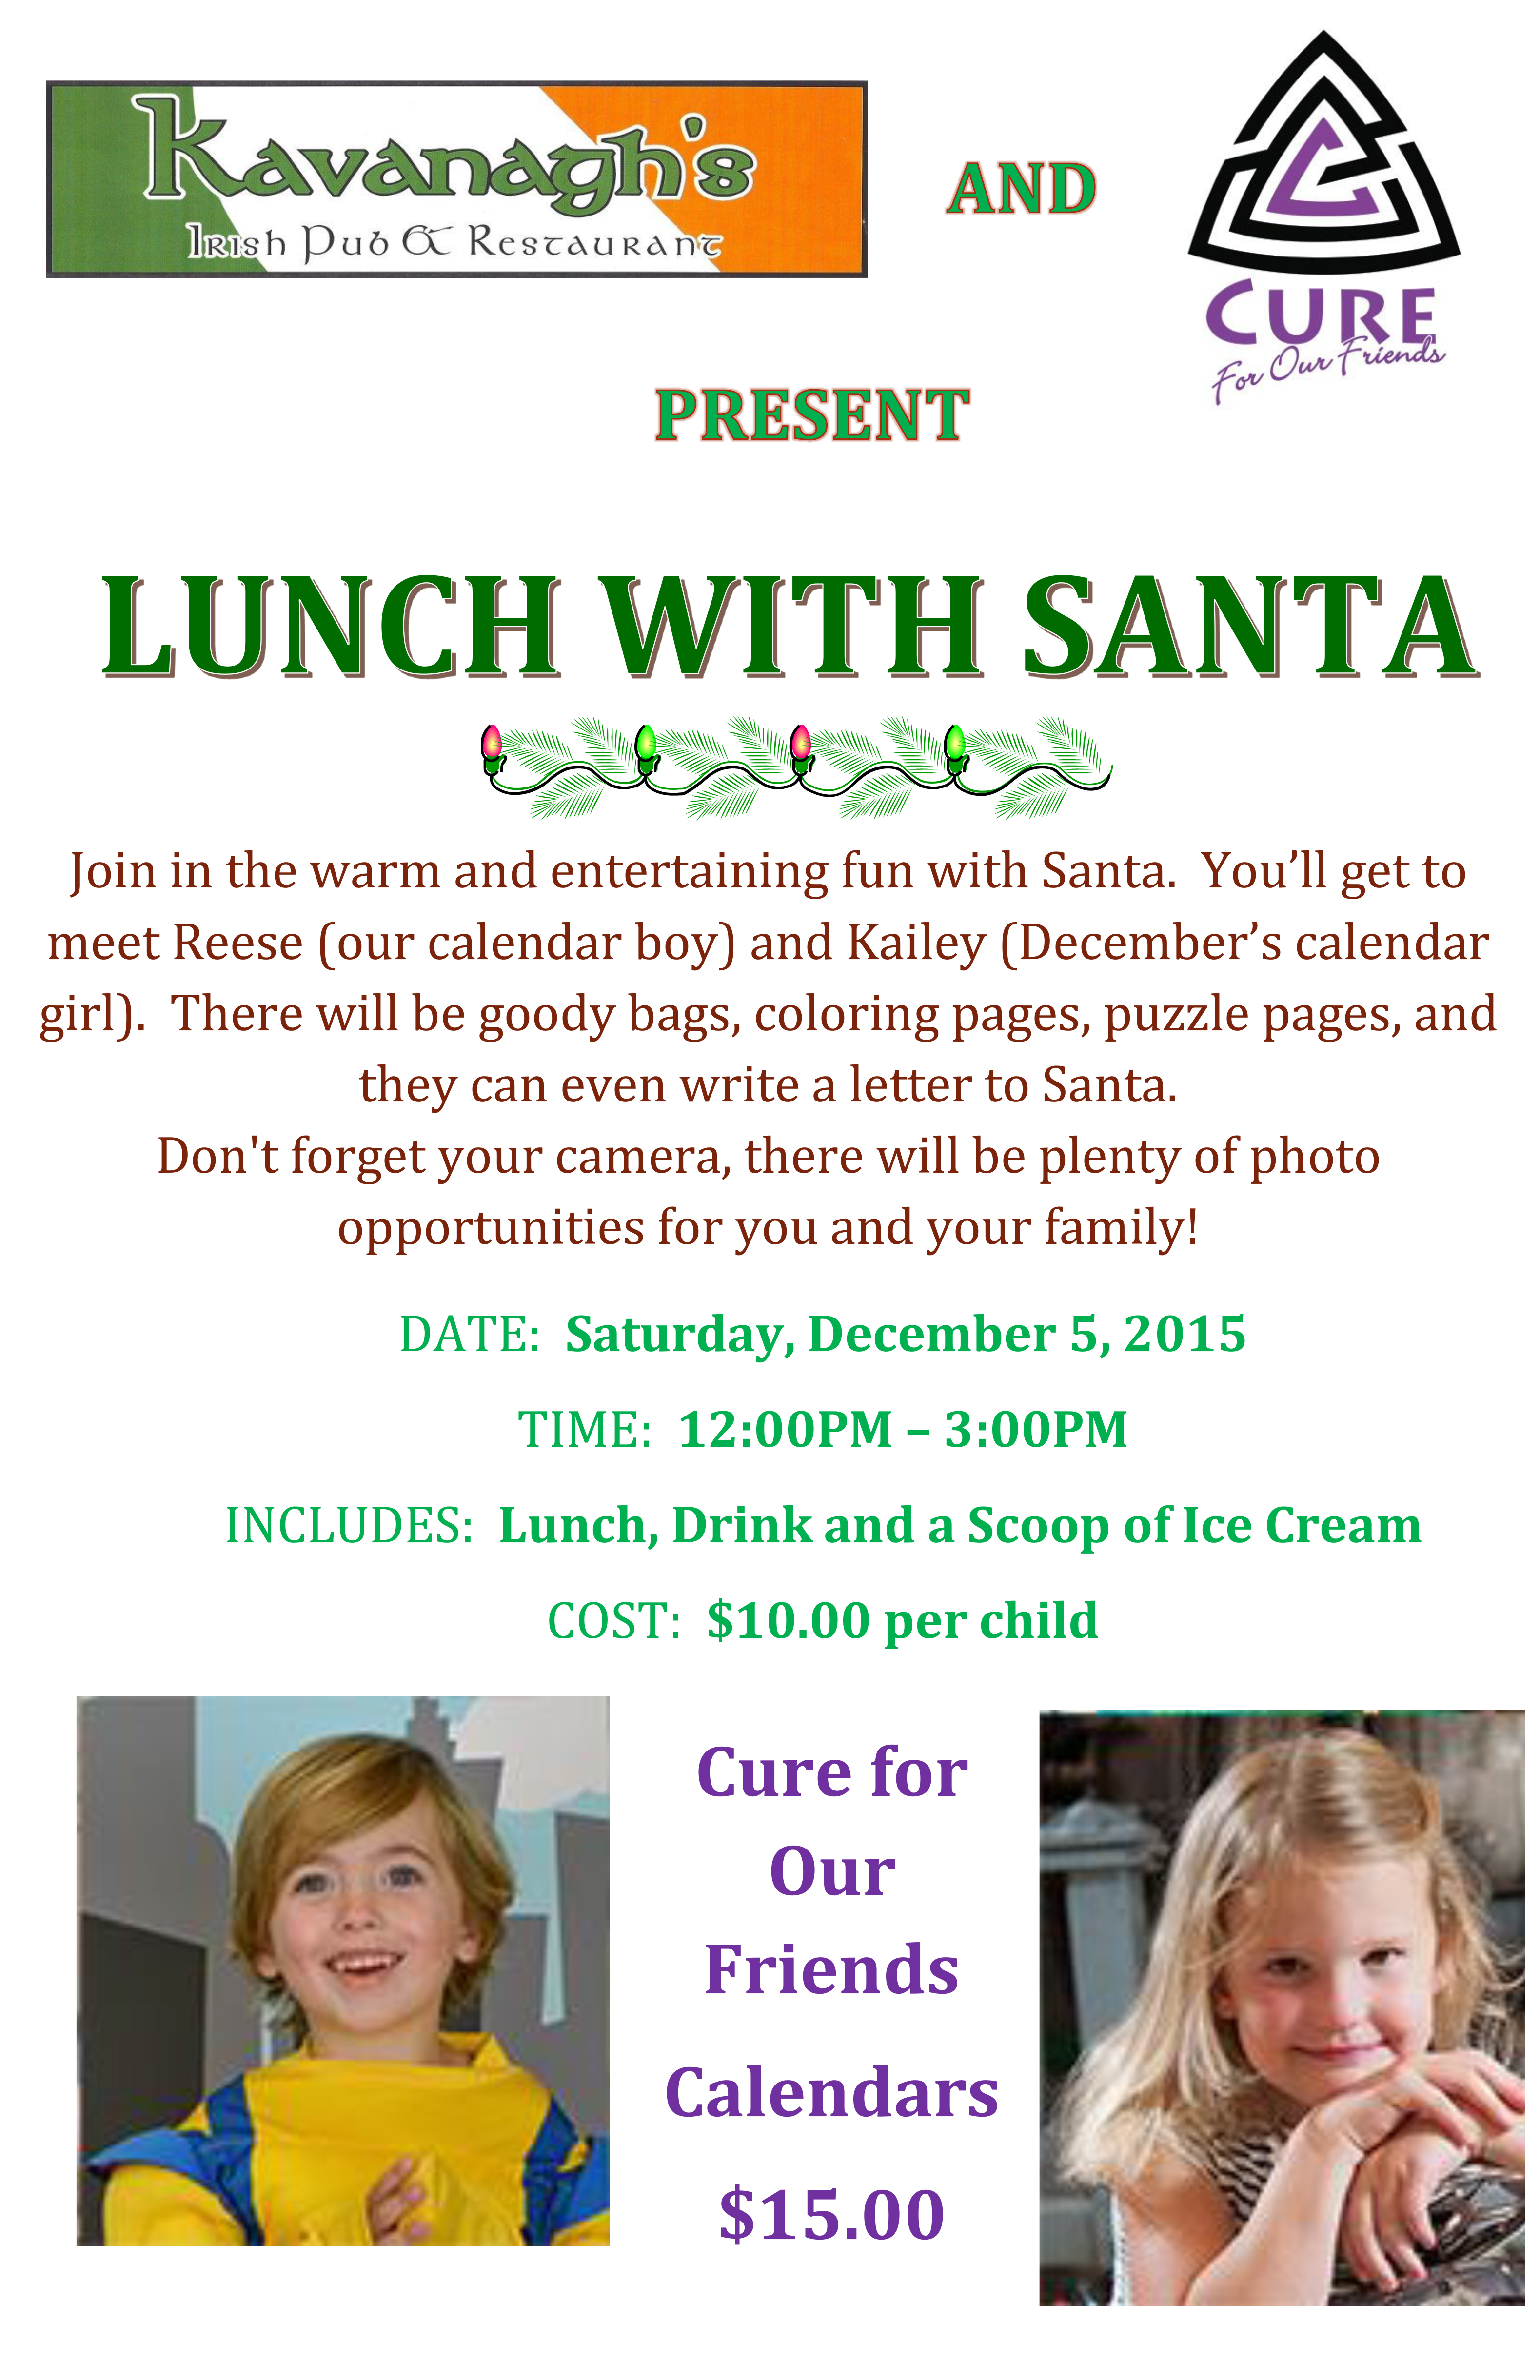 Lunch with Santa Flyer 2015